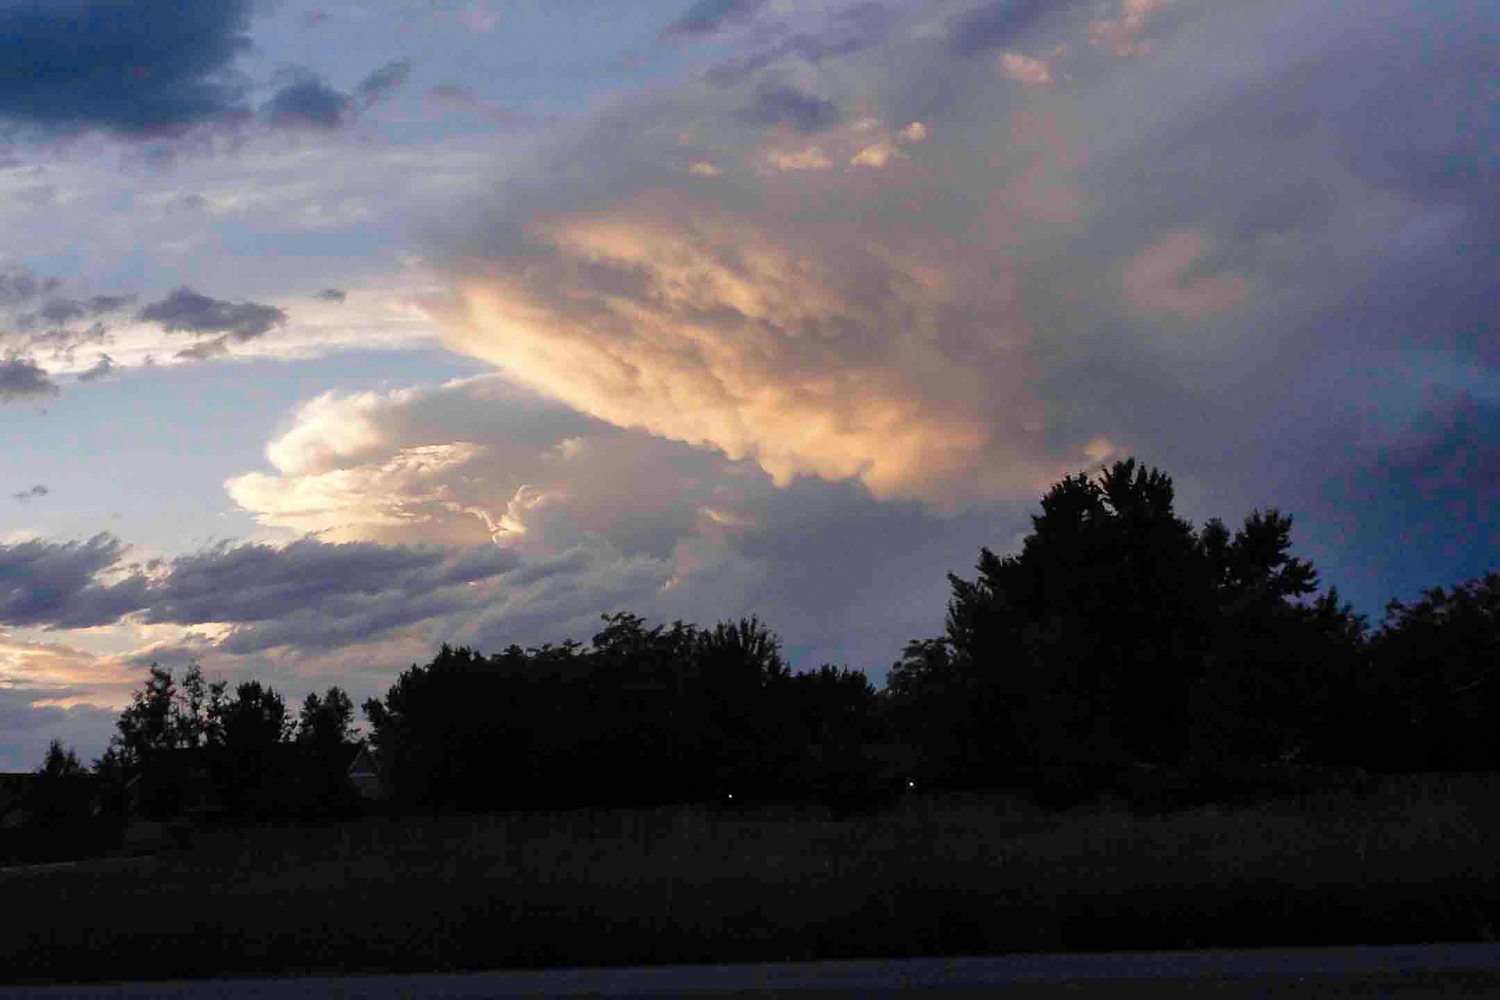 Tips for dramatic skies - Good clouds